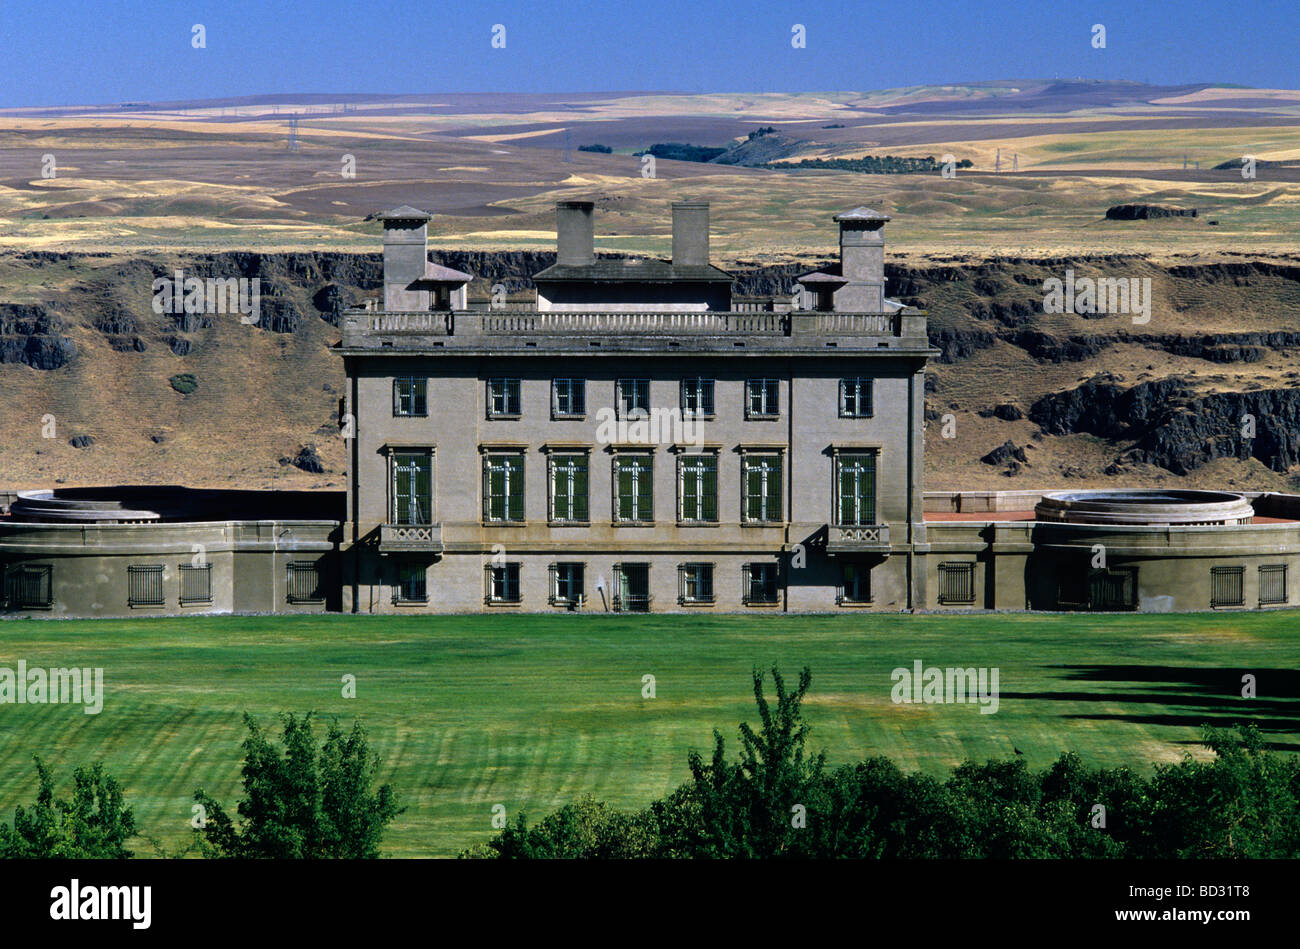 Maryhill Museum overlooking the Columbia River in eastern